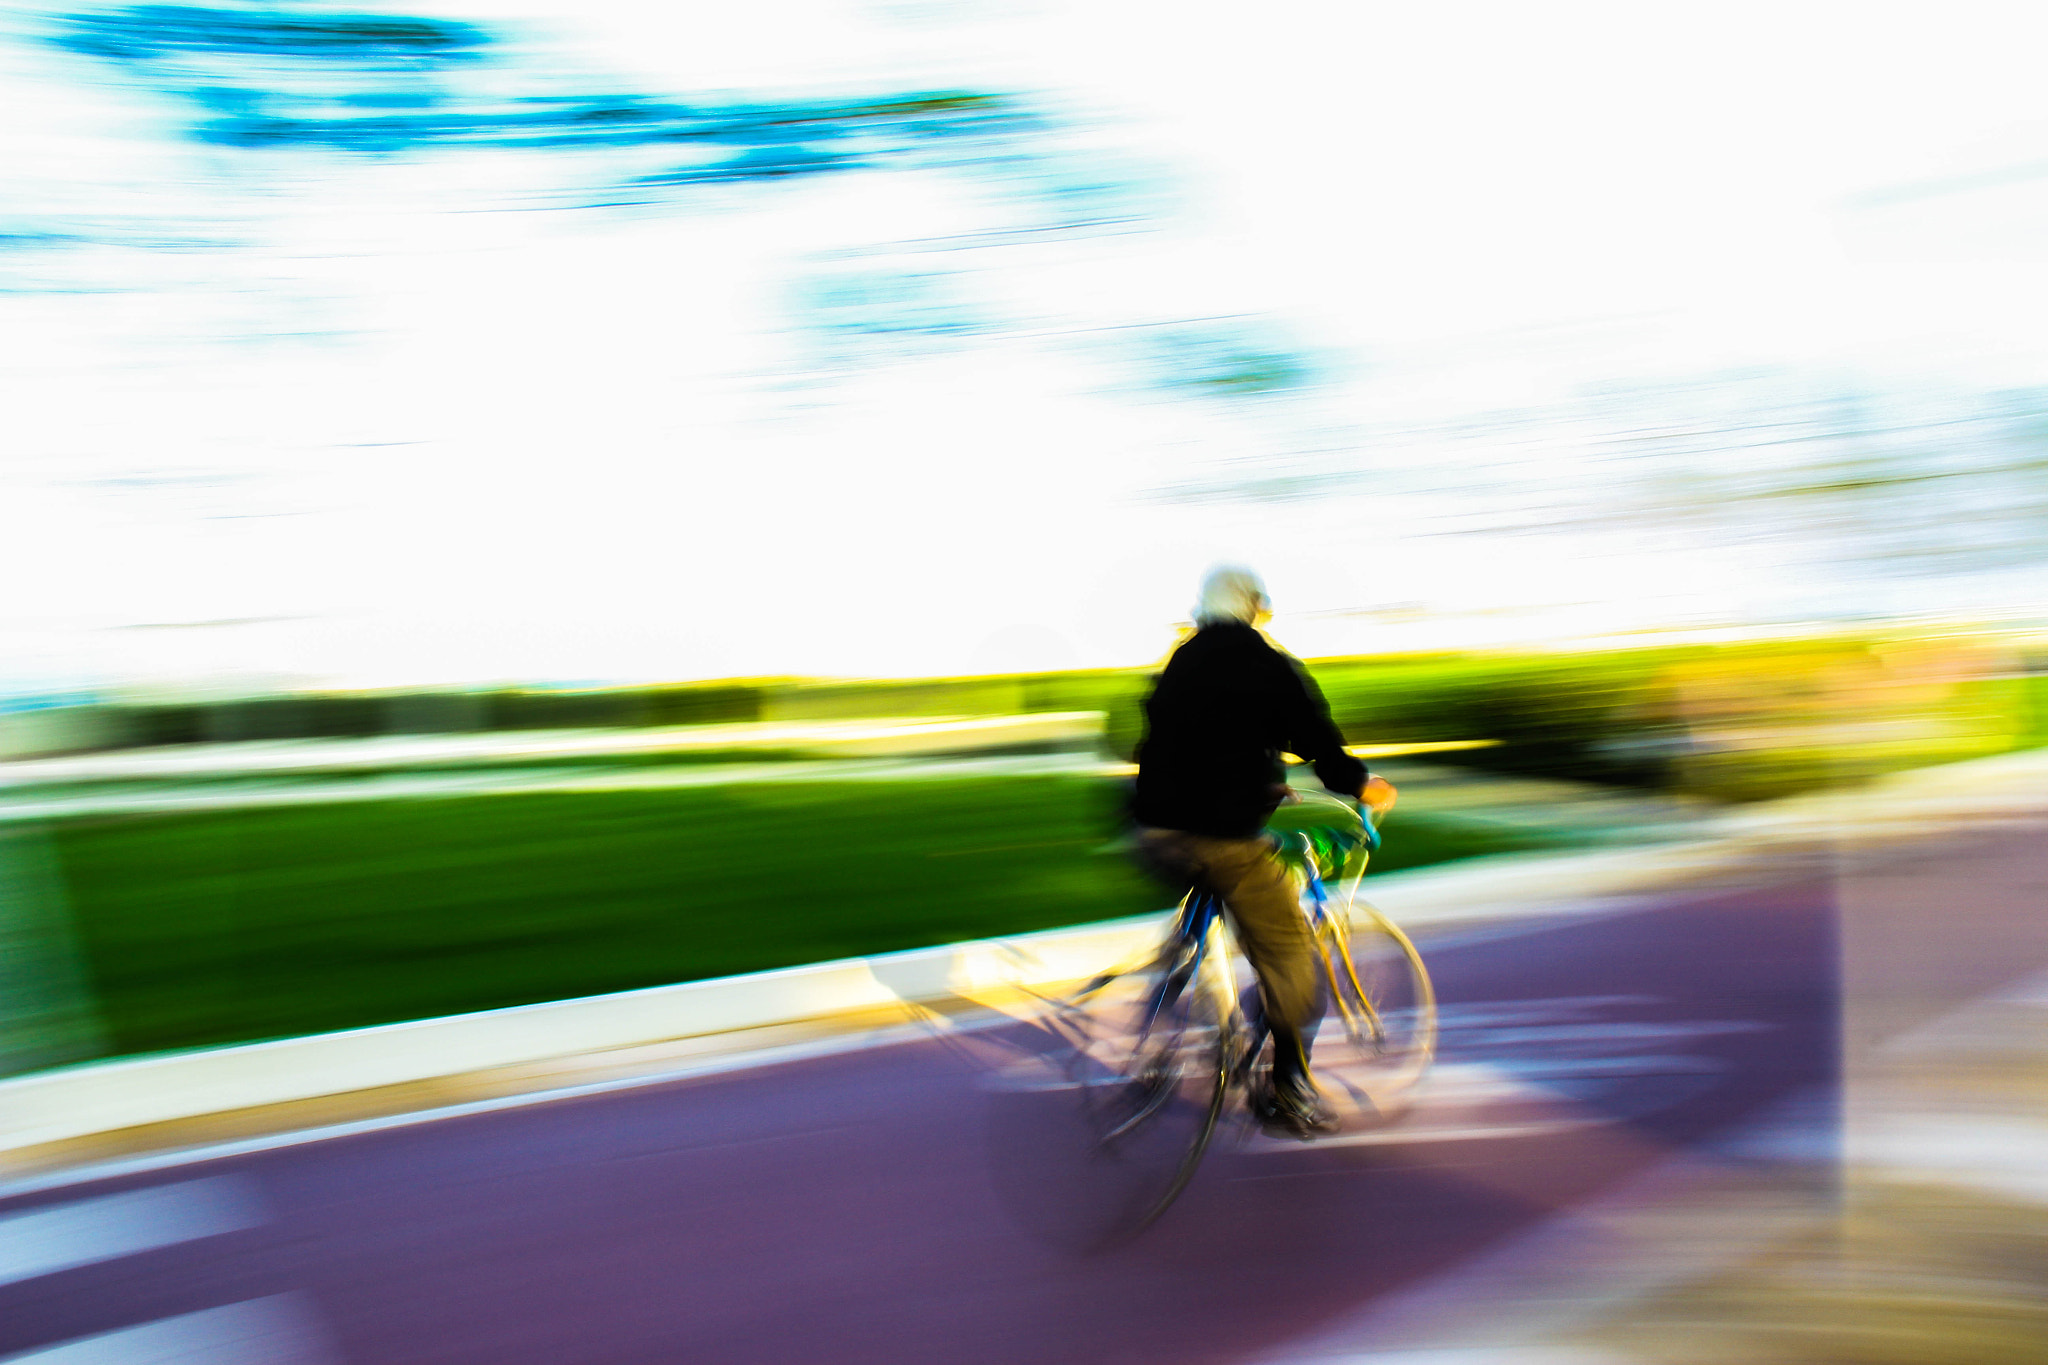 Photograph Pedaling fast by Elpidio Orsomando on 500px